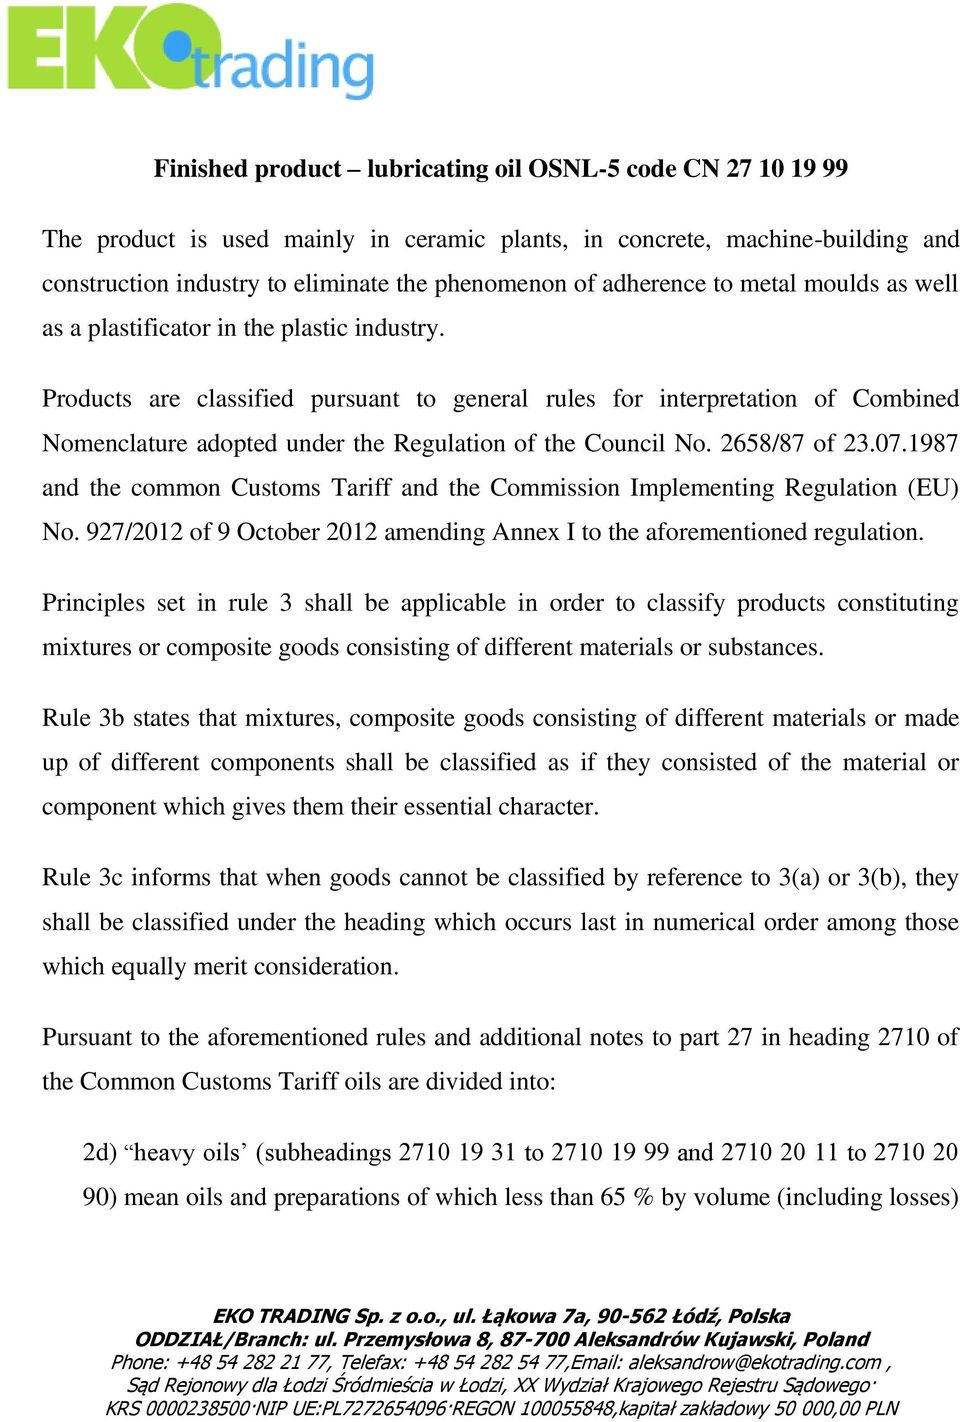 Products are classified pursuant to general rules for interpretation of Combined Nomenclature adopted under the Regulation of the Council No. 2658/87 of 23.07.